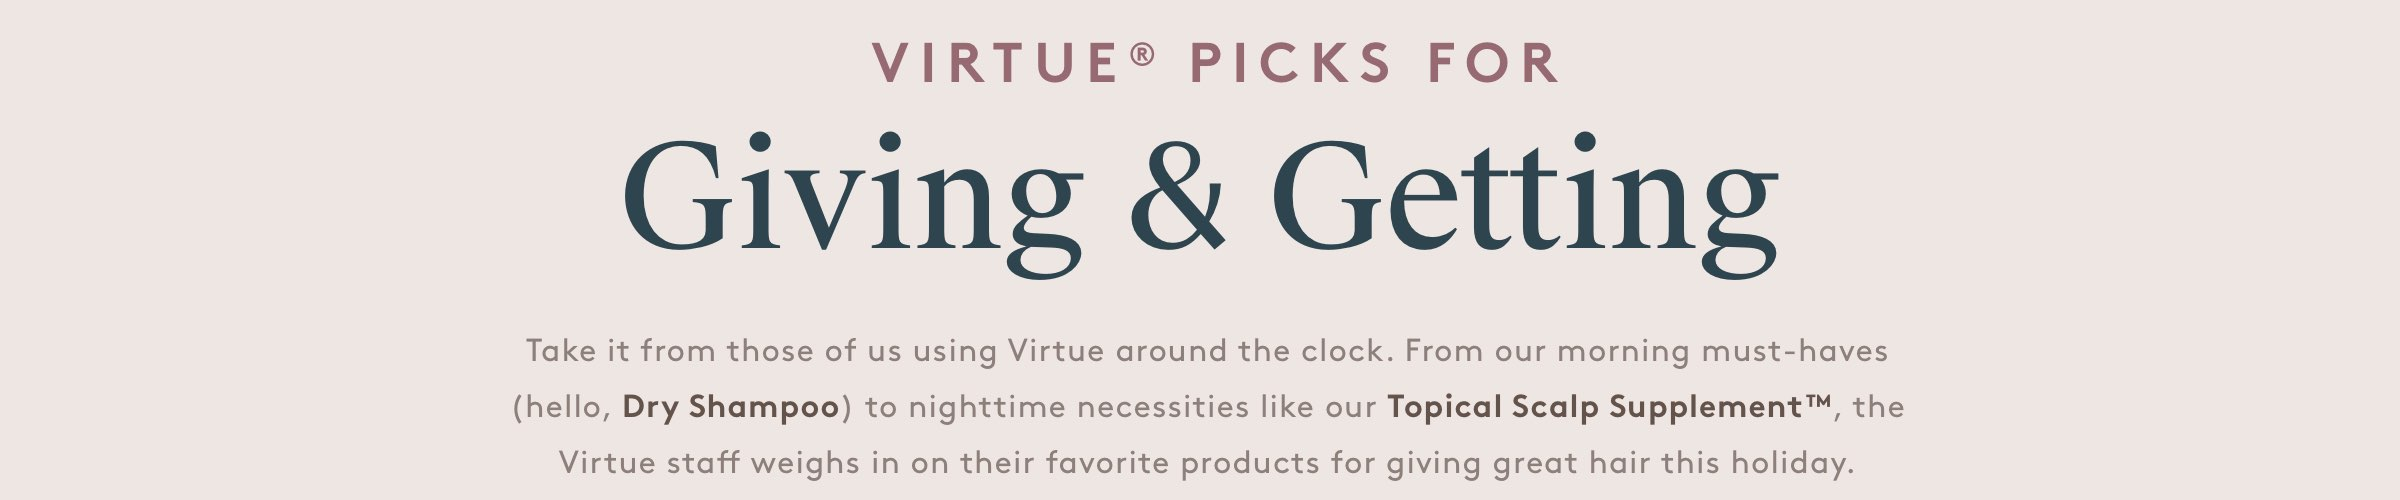 Virtue Picks for Giving & Getting